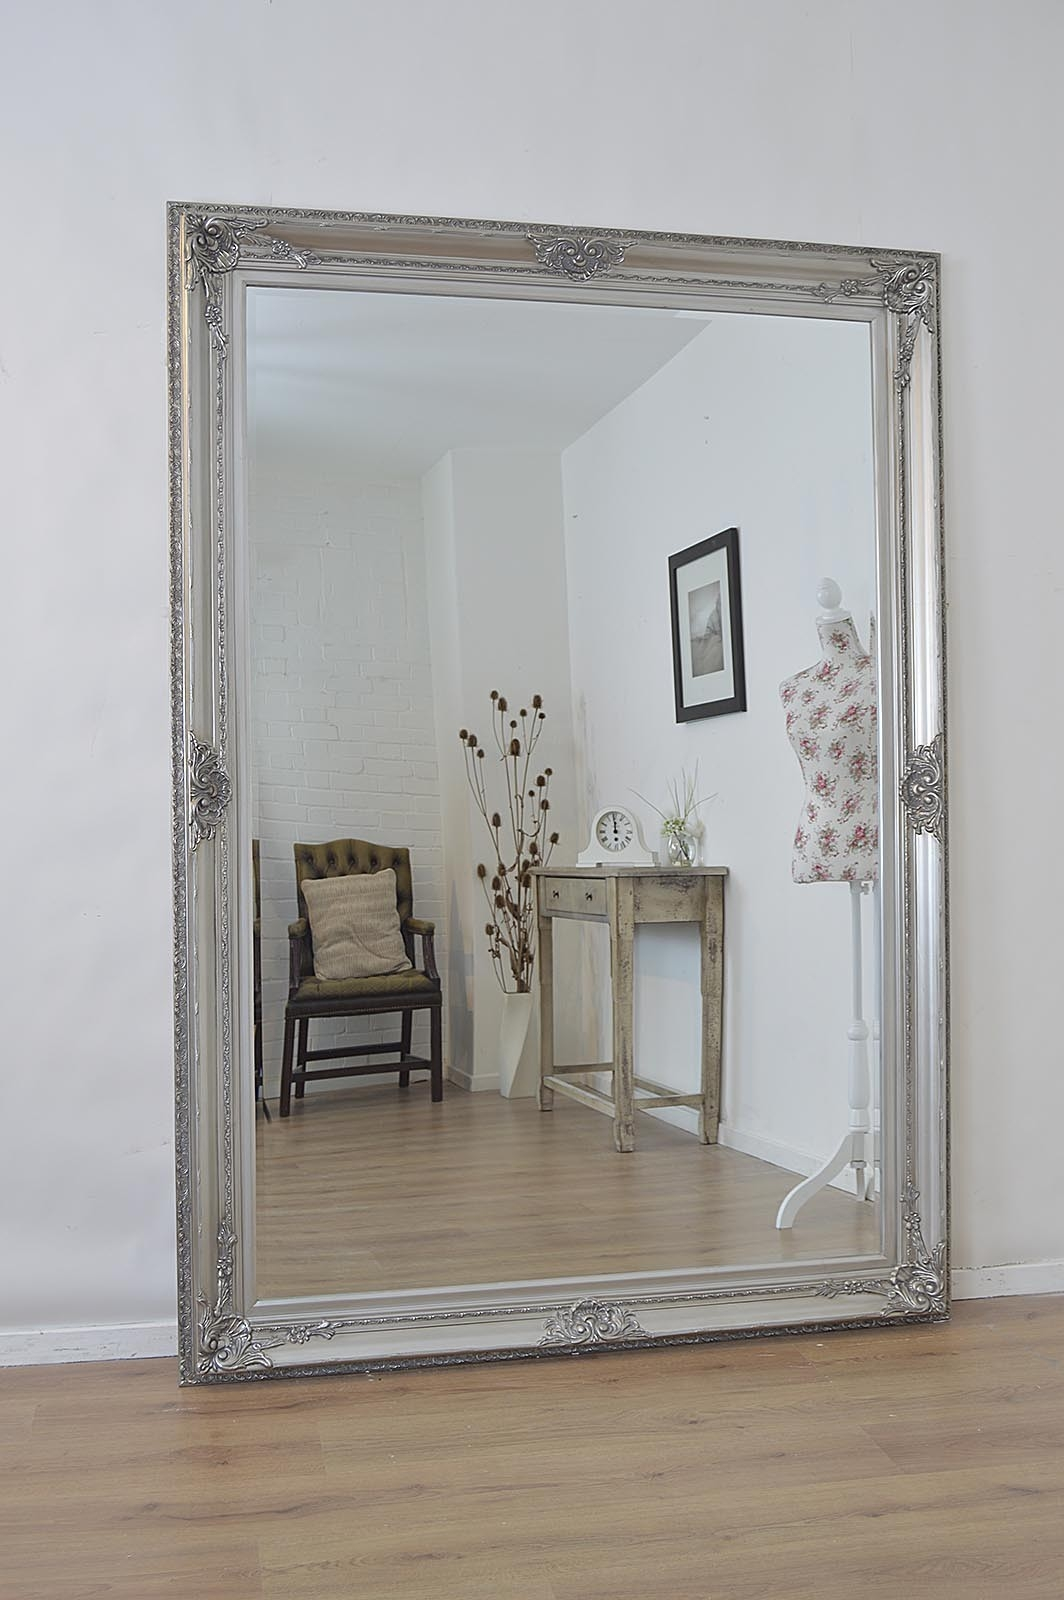 Wonderful Decoration Standing Wall Mirror Absolutely Design Big With Regard To Big Standing Mirror (Image 14 of 15)